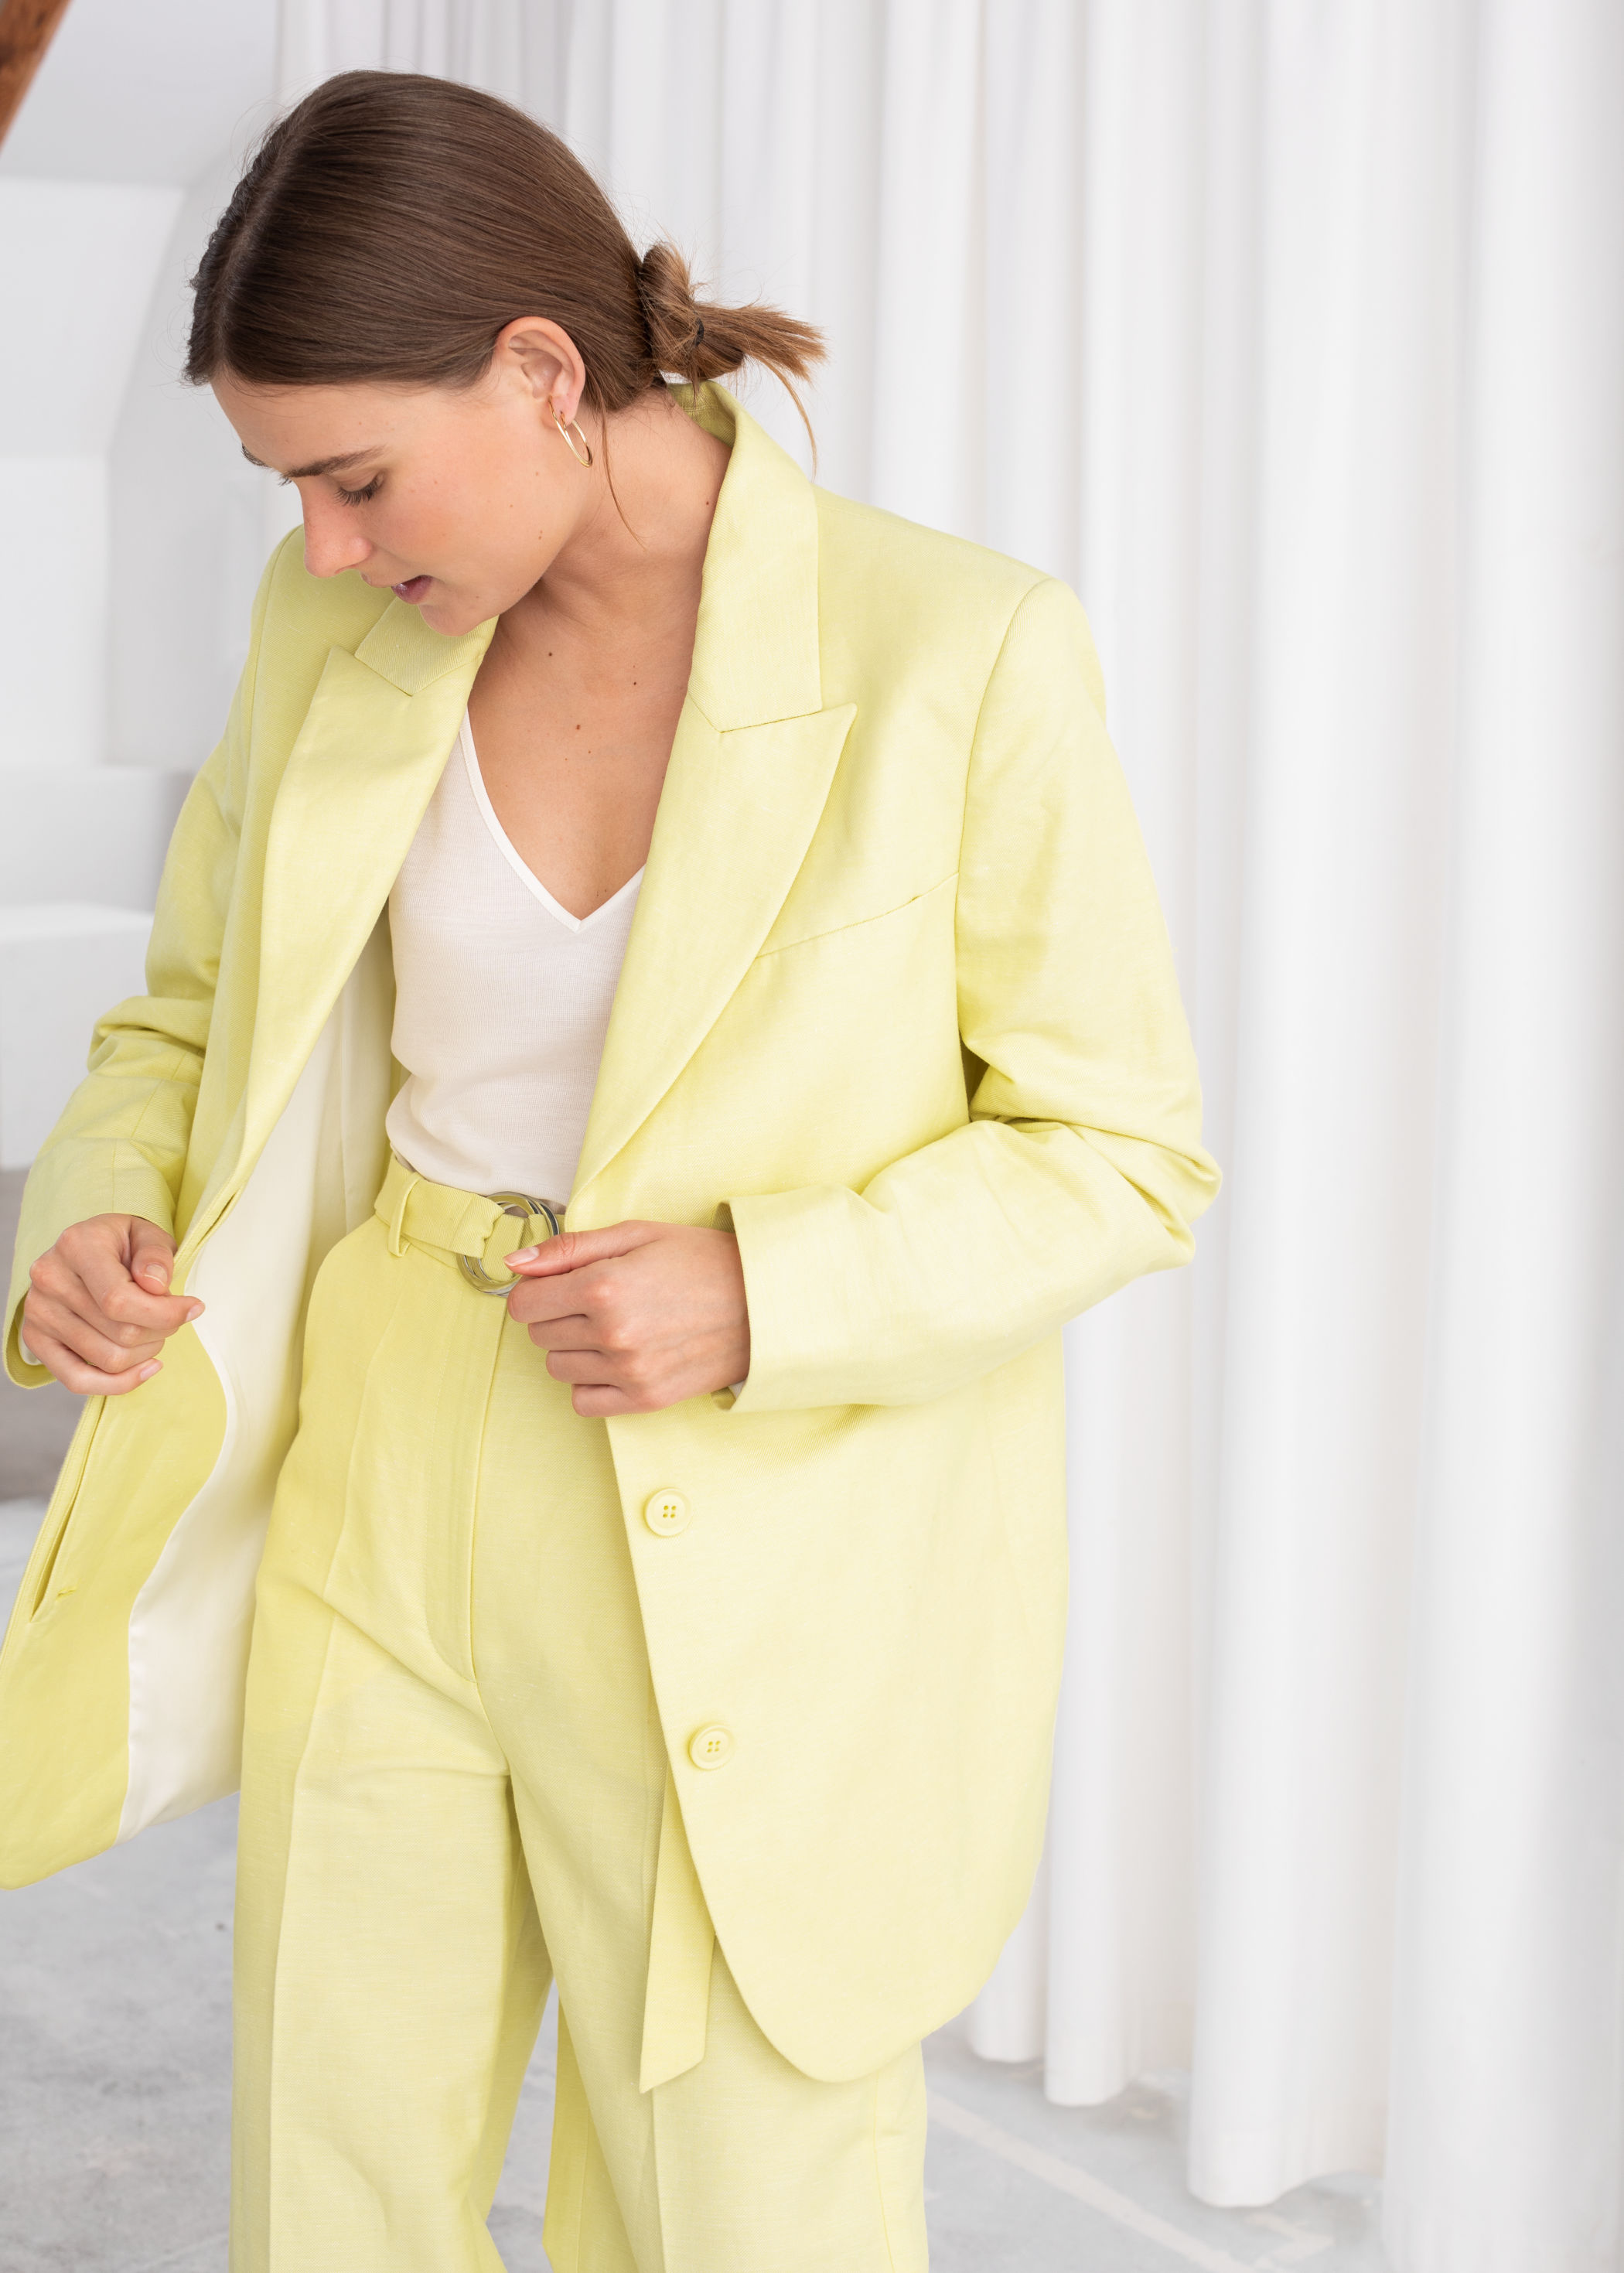 And Other Stories Oversized Linen Blend Blazer; Belted Cotton Linen Blend Trousers